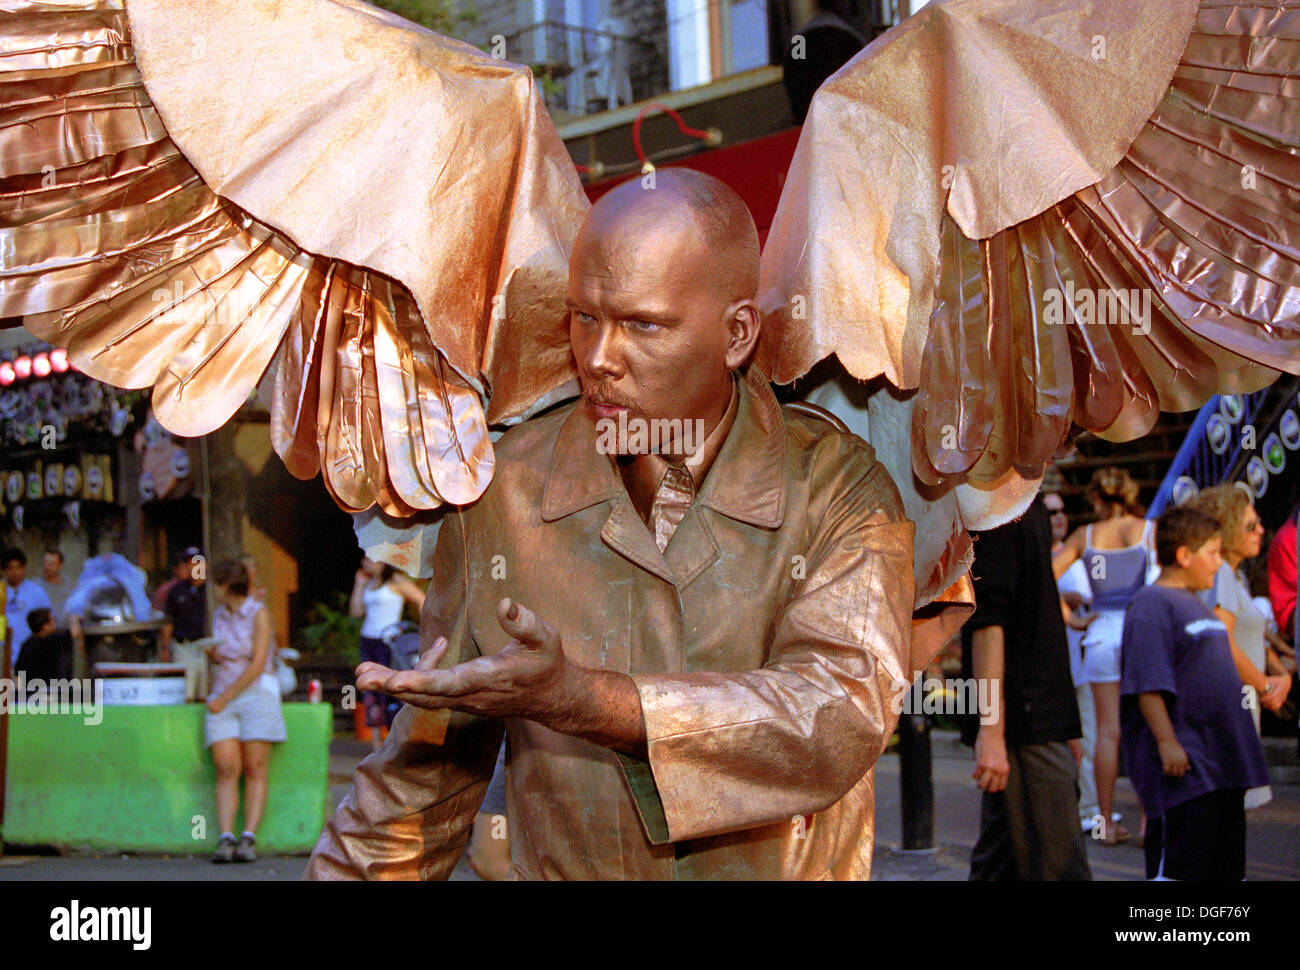 winged-street-artist-walking-in-downtown-montreal-during-the-just-DGF76Y.jpg